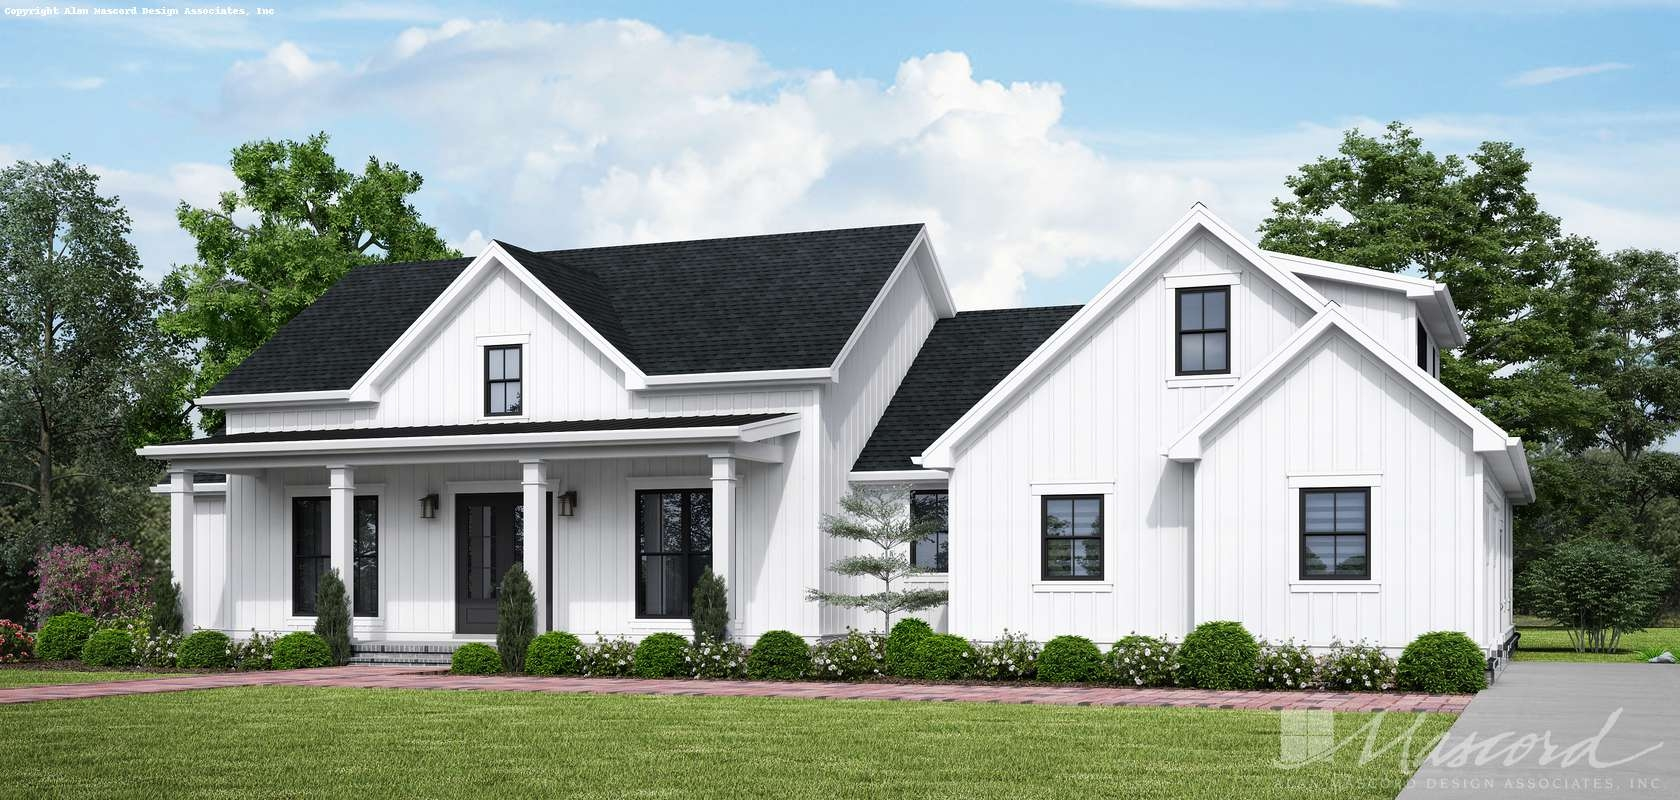 Contemporary House Plan 1262 The Birch Wood Farm 2508 Sqft 3 | House Design With Stairs In Front | Village | Front Yard Stair | Unique | Elevated | Wood